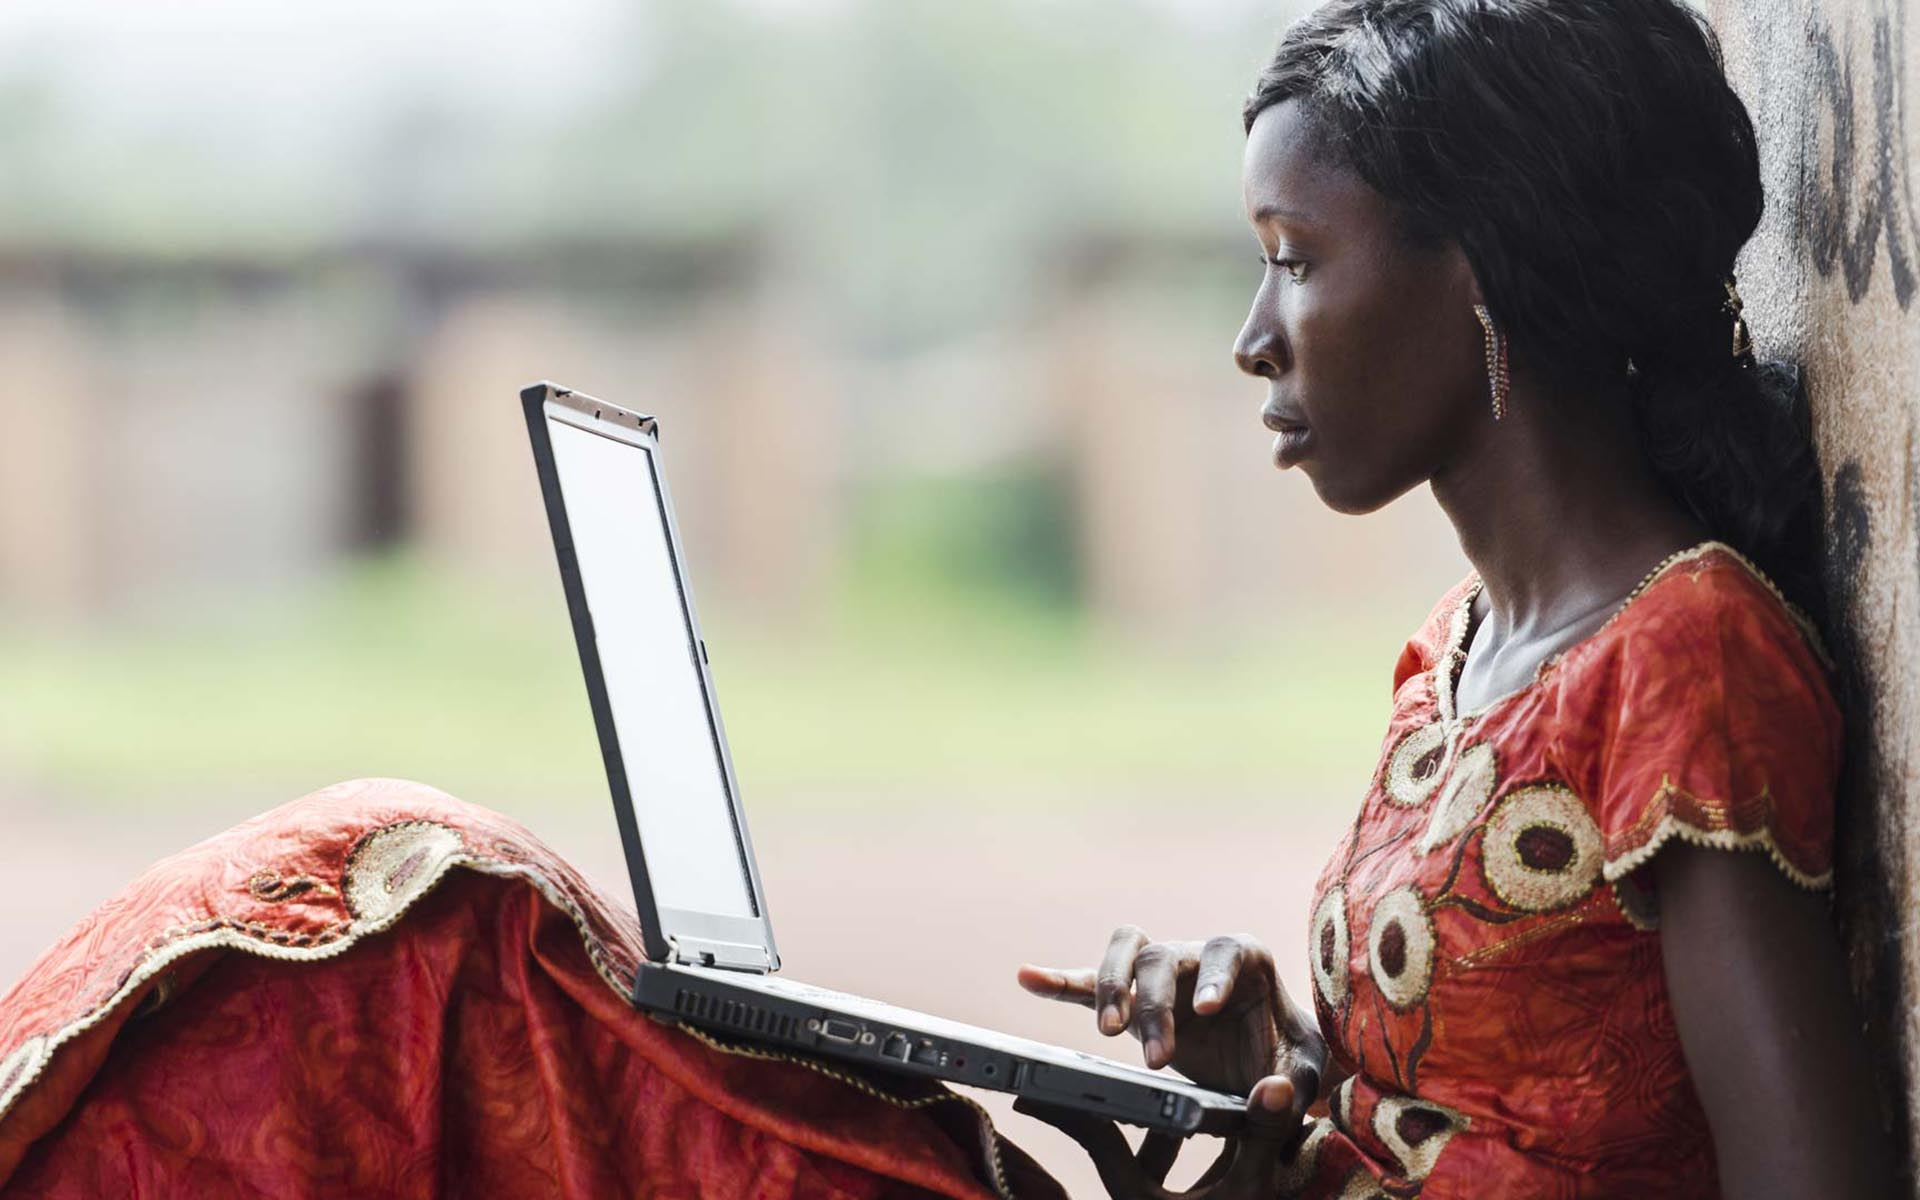 Internet Service Provider Cajutel to Bring Affordable High-Speed Internet to West Africa